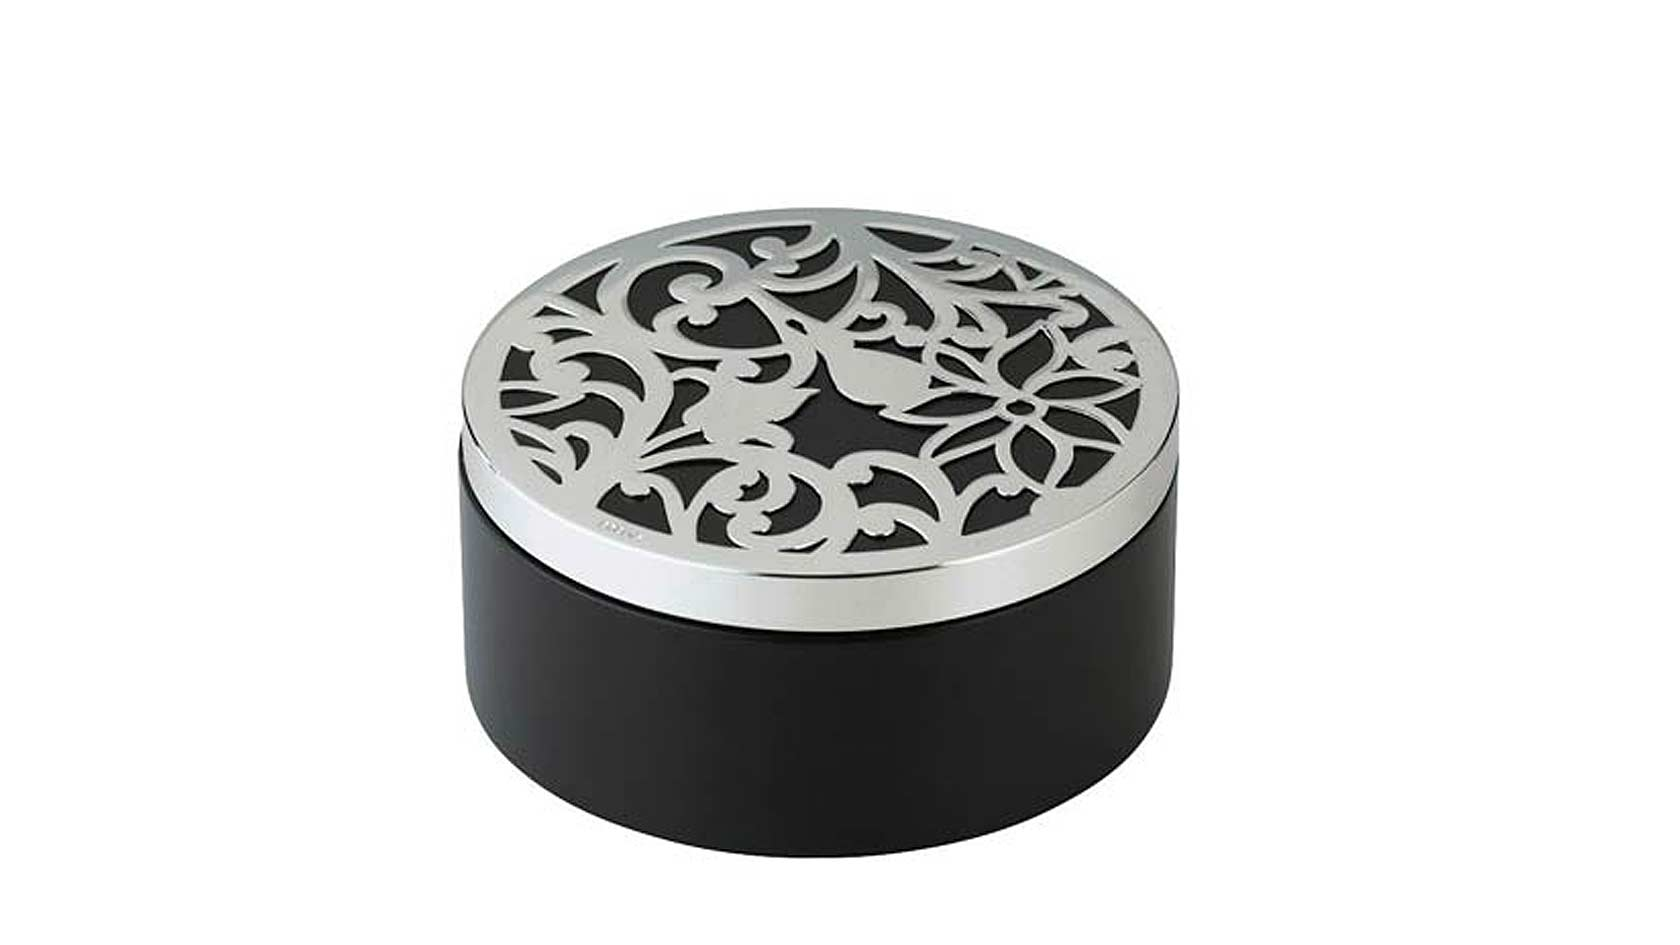 Insolent Silver Plated Desk Box